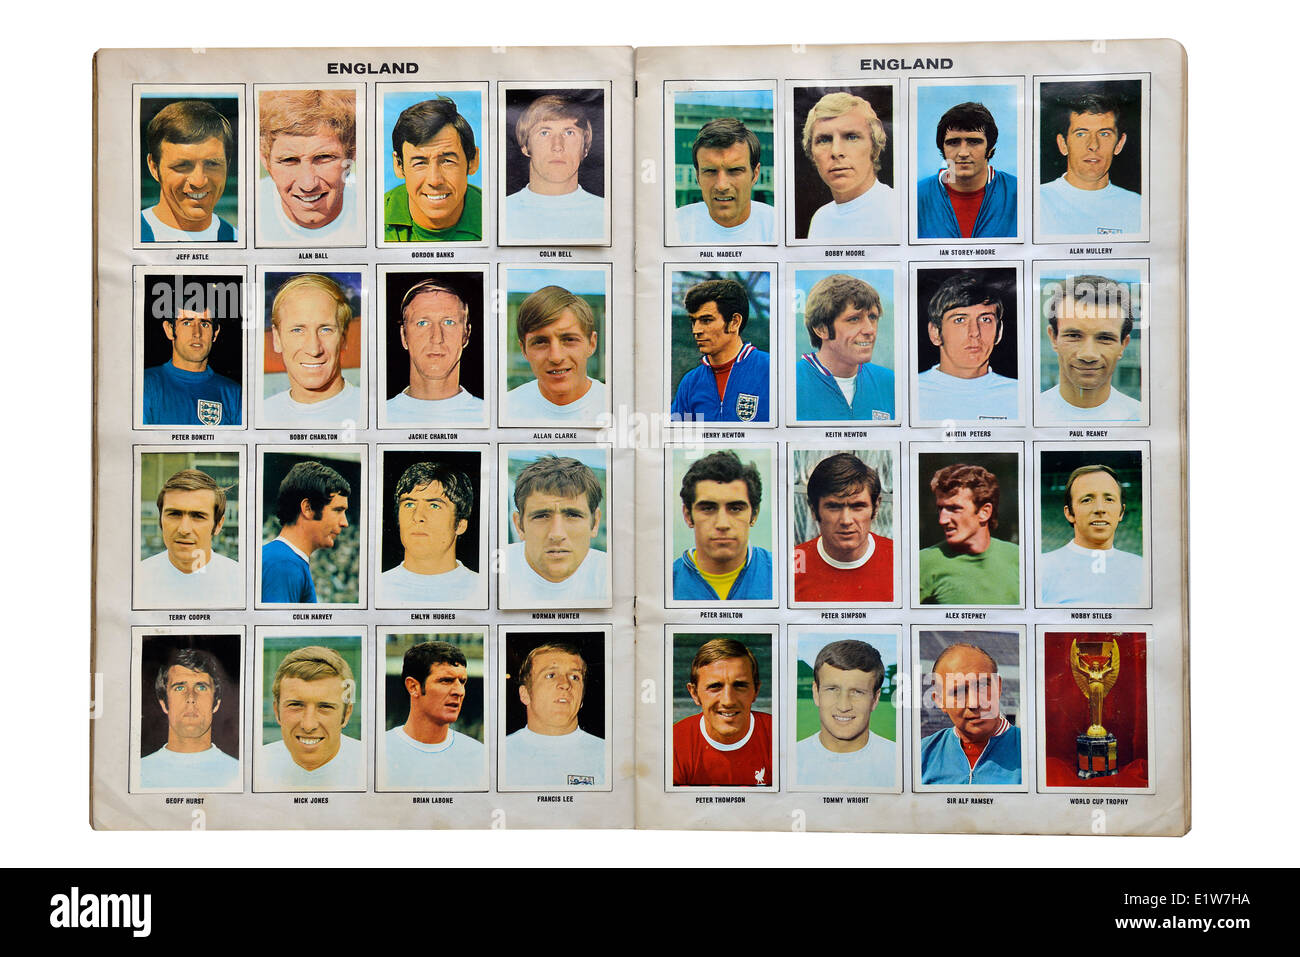 Full England World cup squad for Mexico 1970. Football soccer player card collection - Stock Image